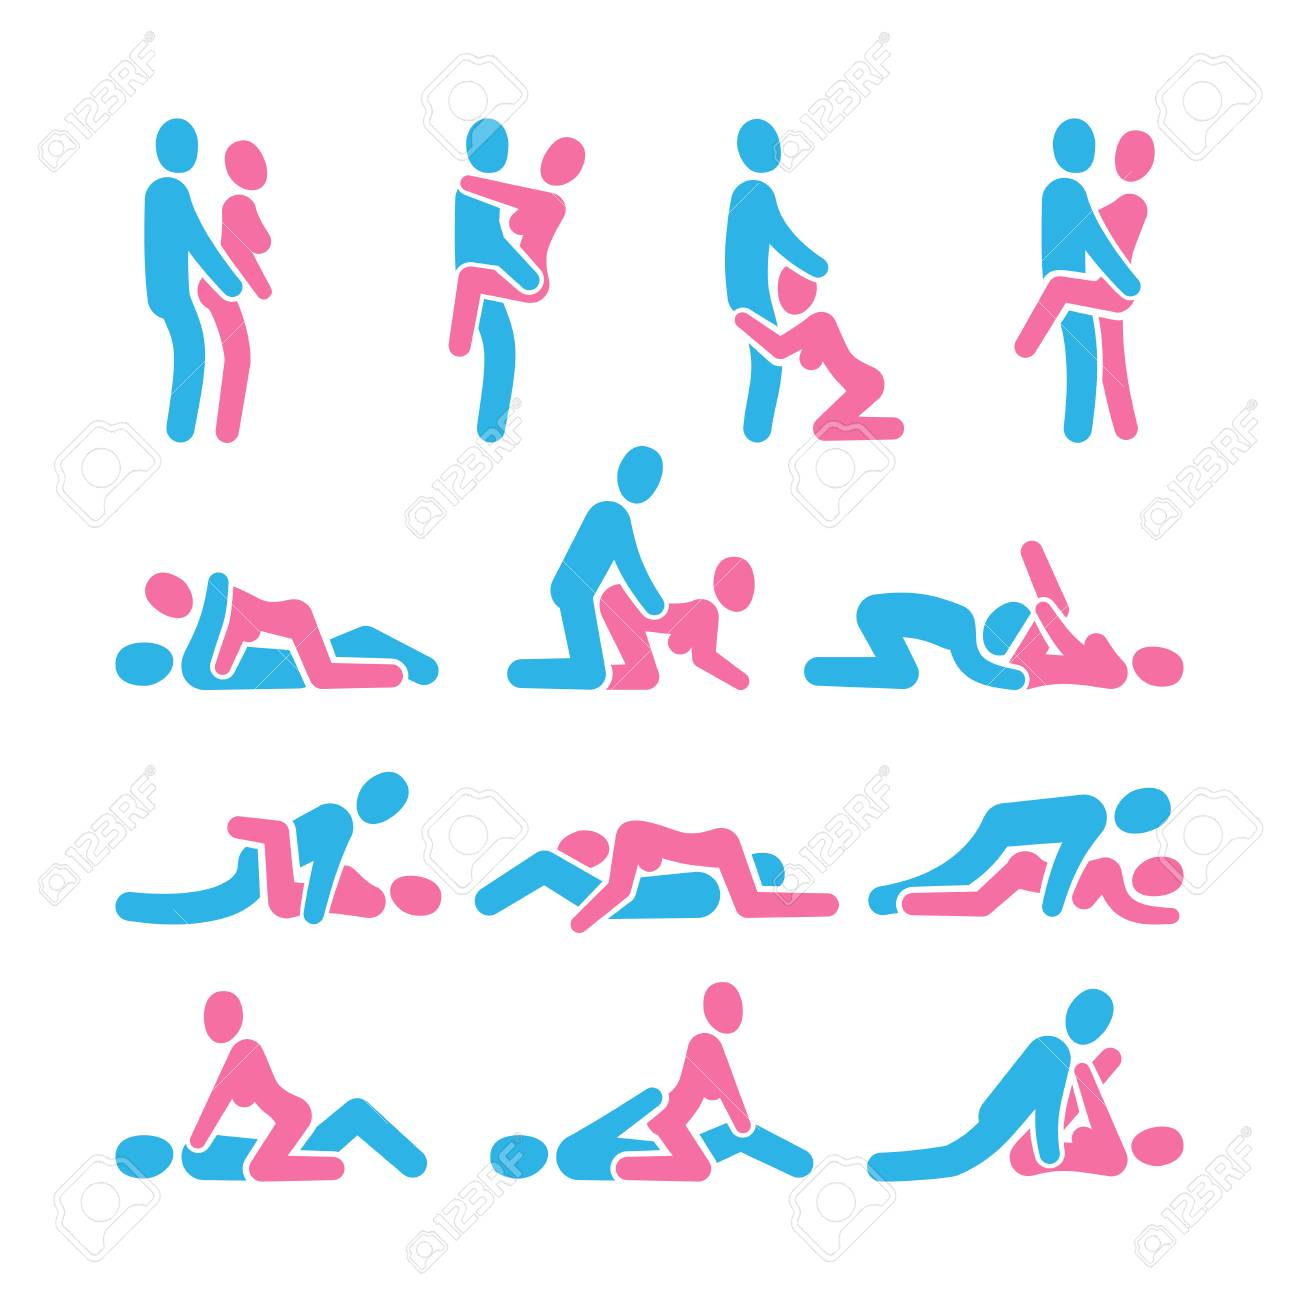 Sexual position vector icons. Sex positioning between man and woman couple pictograms, kamasutra vector set. Illustration of man and woman pose collection - 116380511